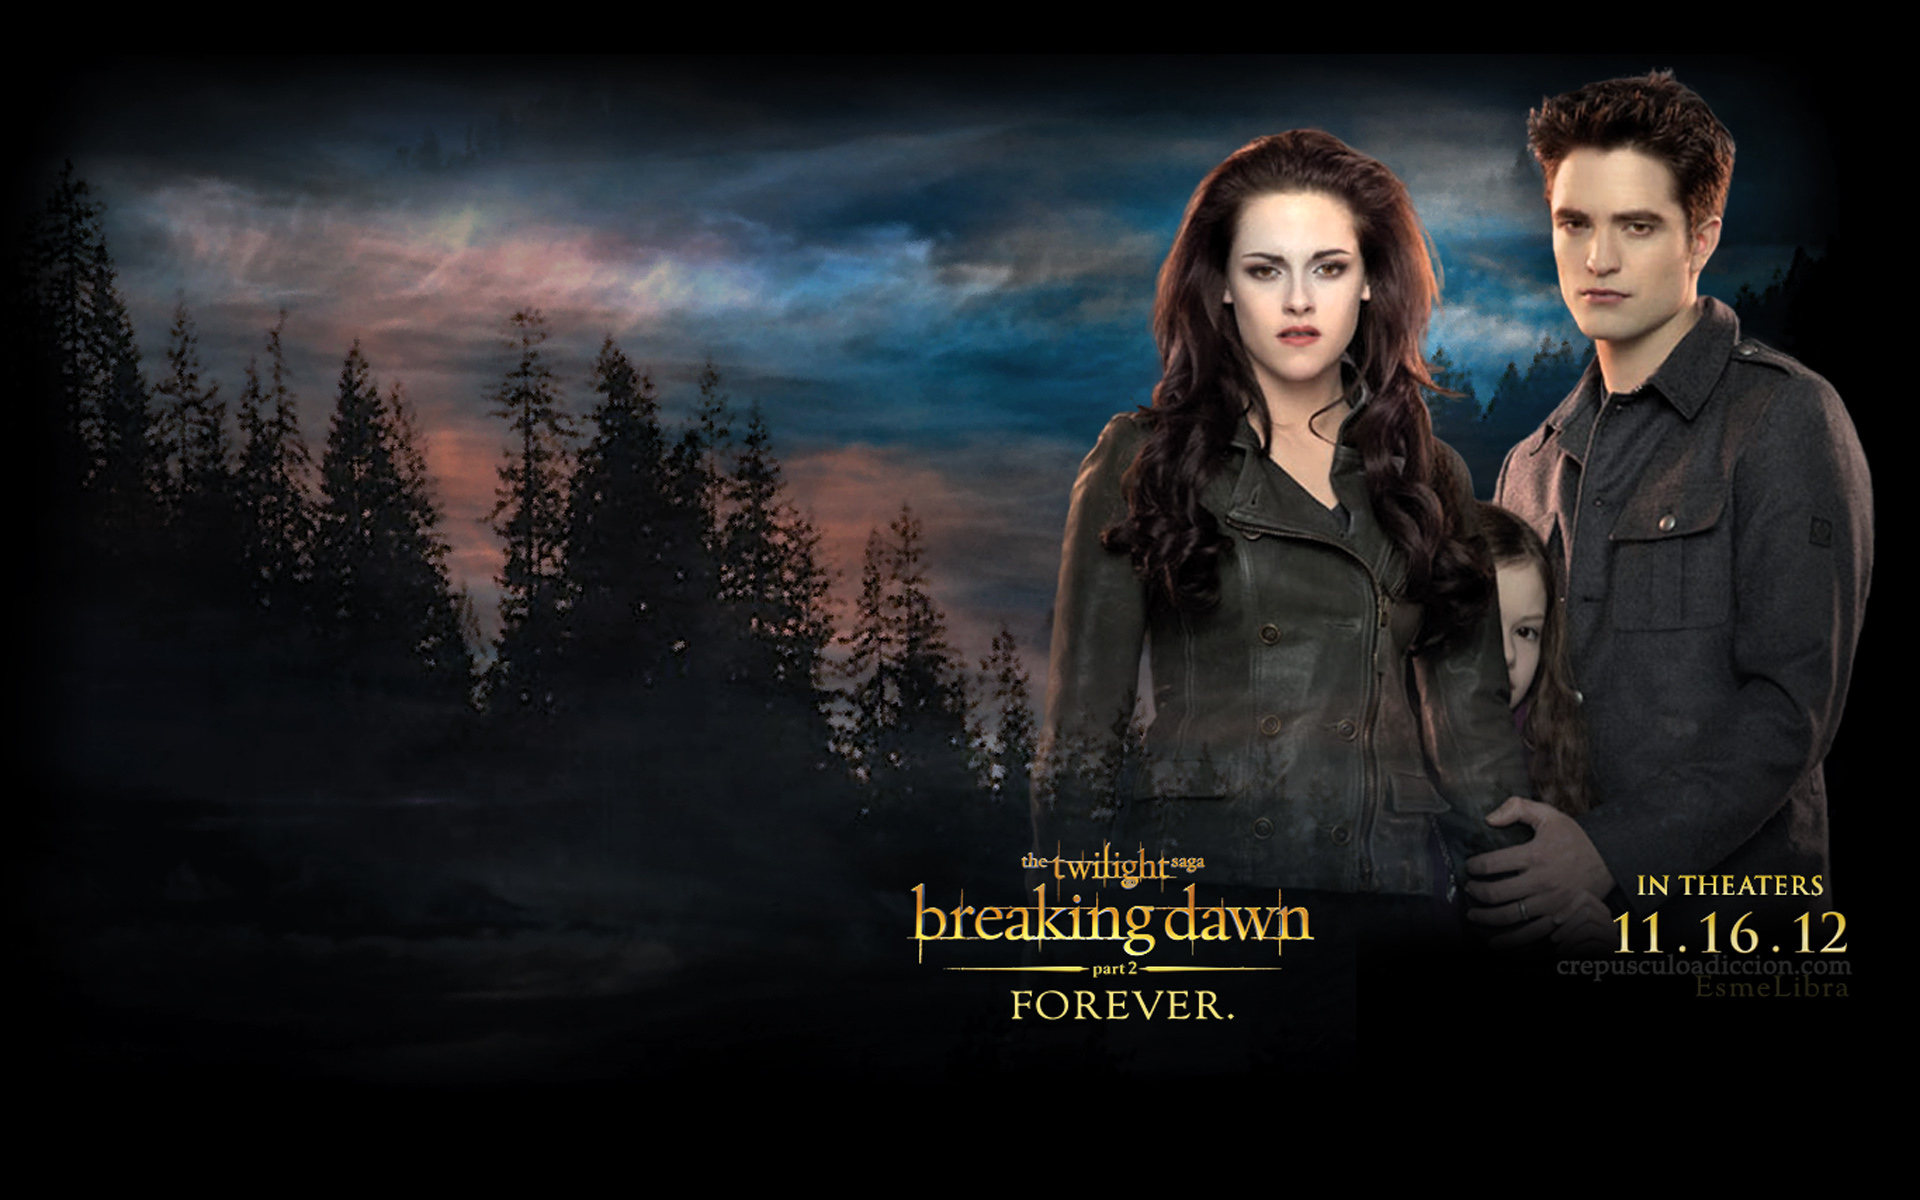 Twilight Series Breaking Dawn Part 2 Wallpaper